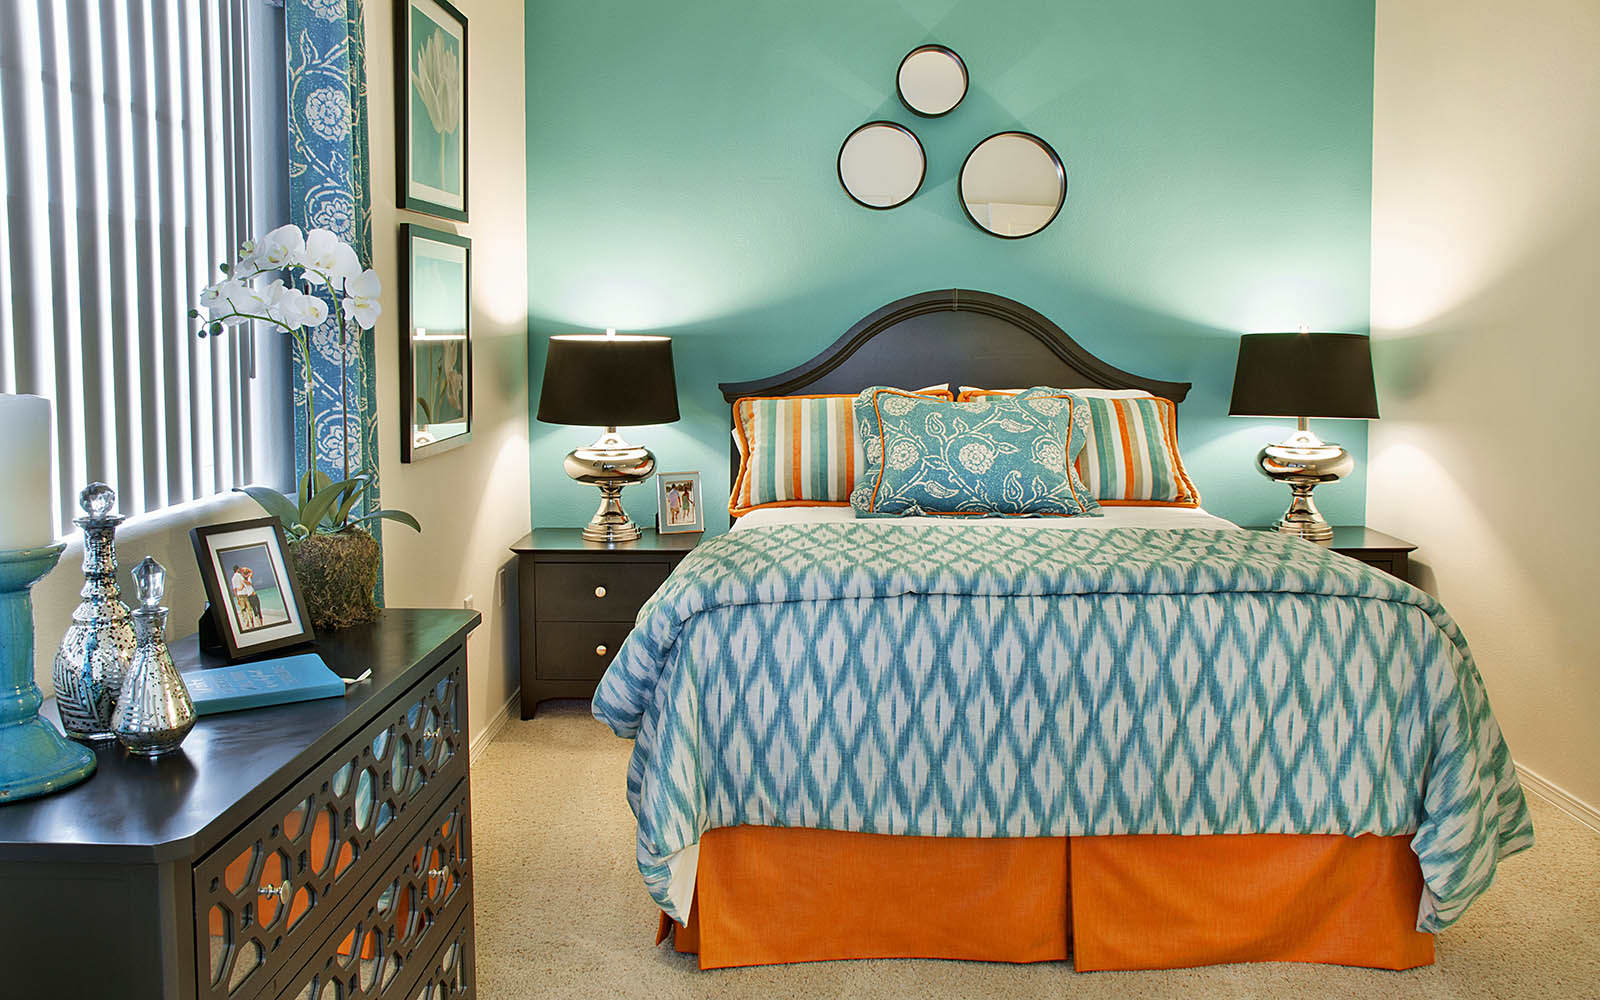 Brightly Decorated Master Bedroom at Siena Apartments in Santa Maria, CA